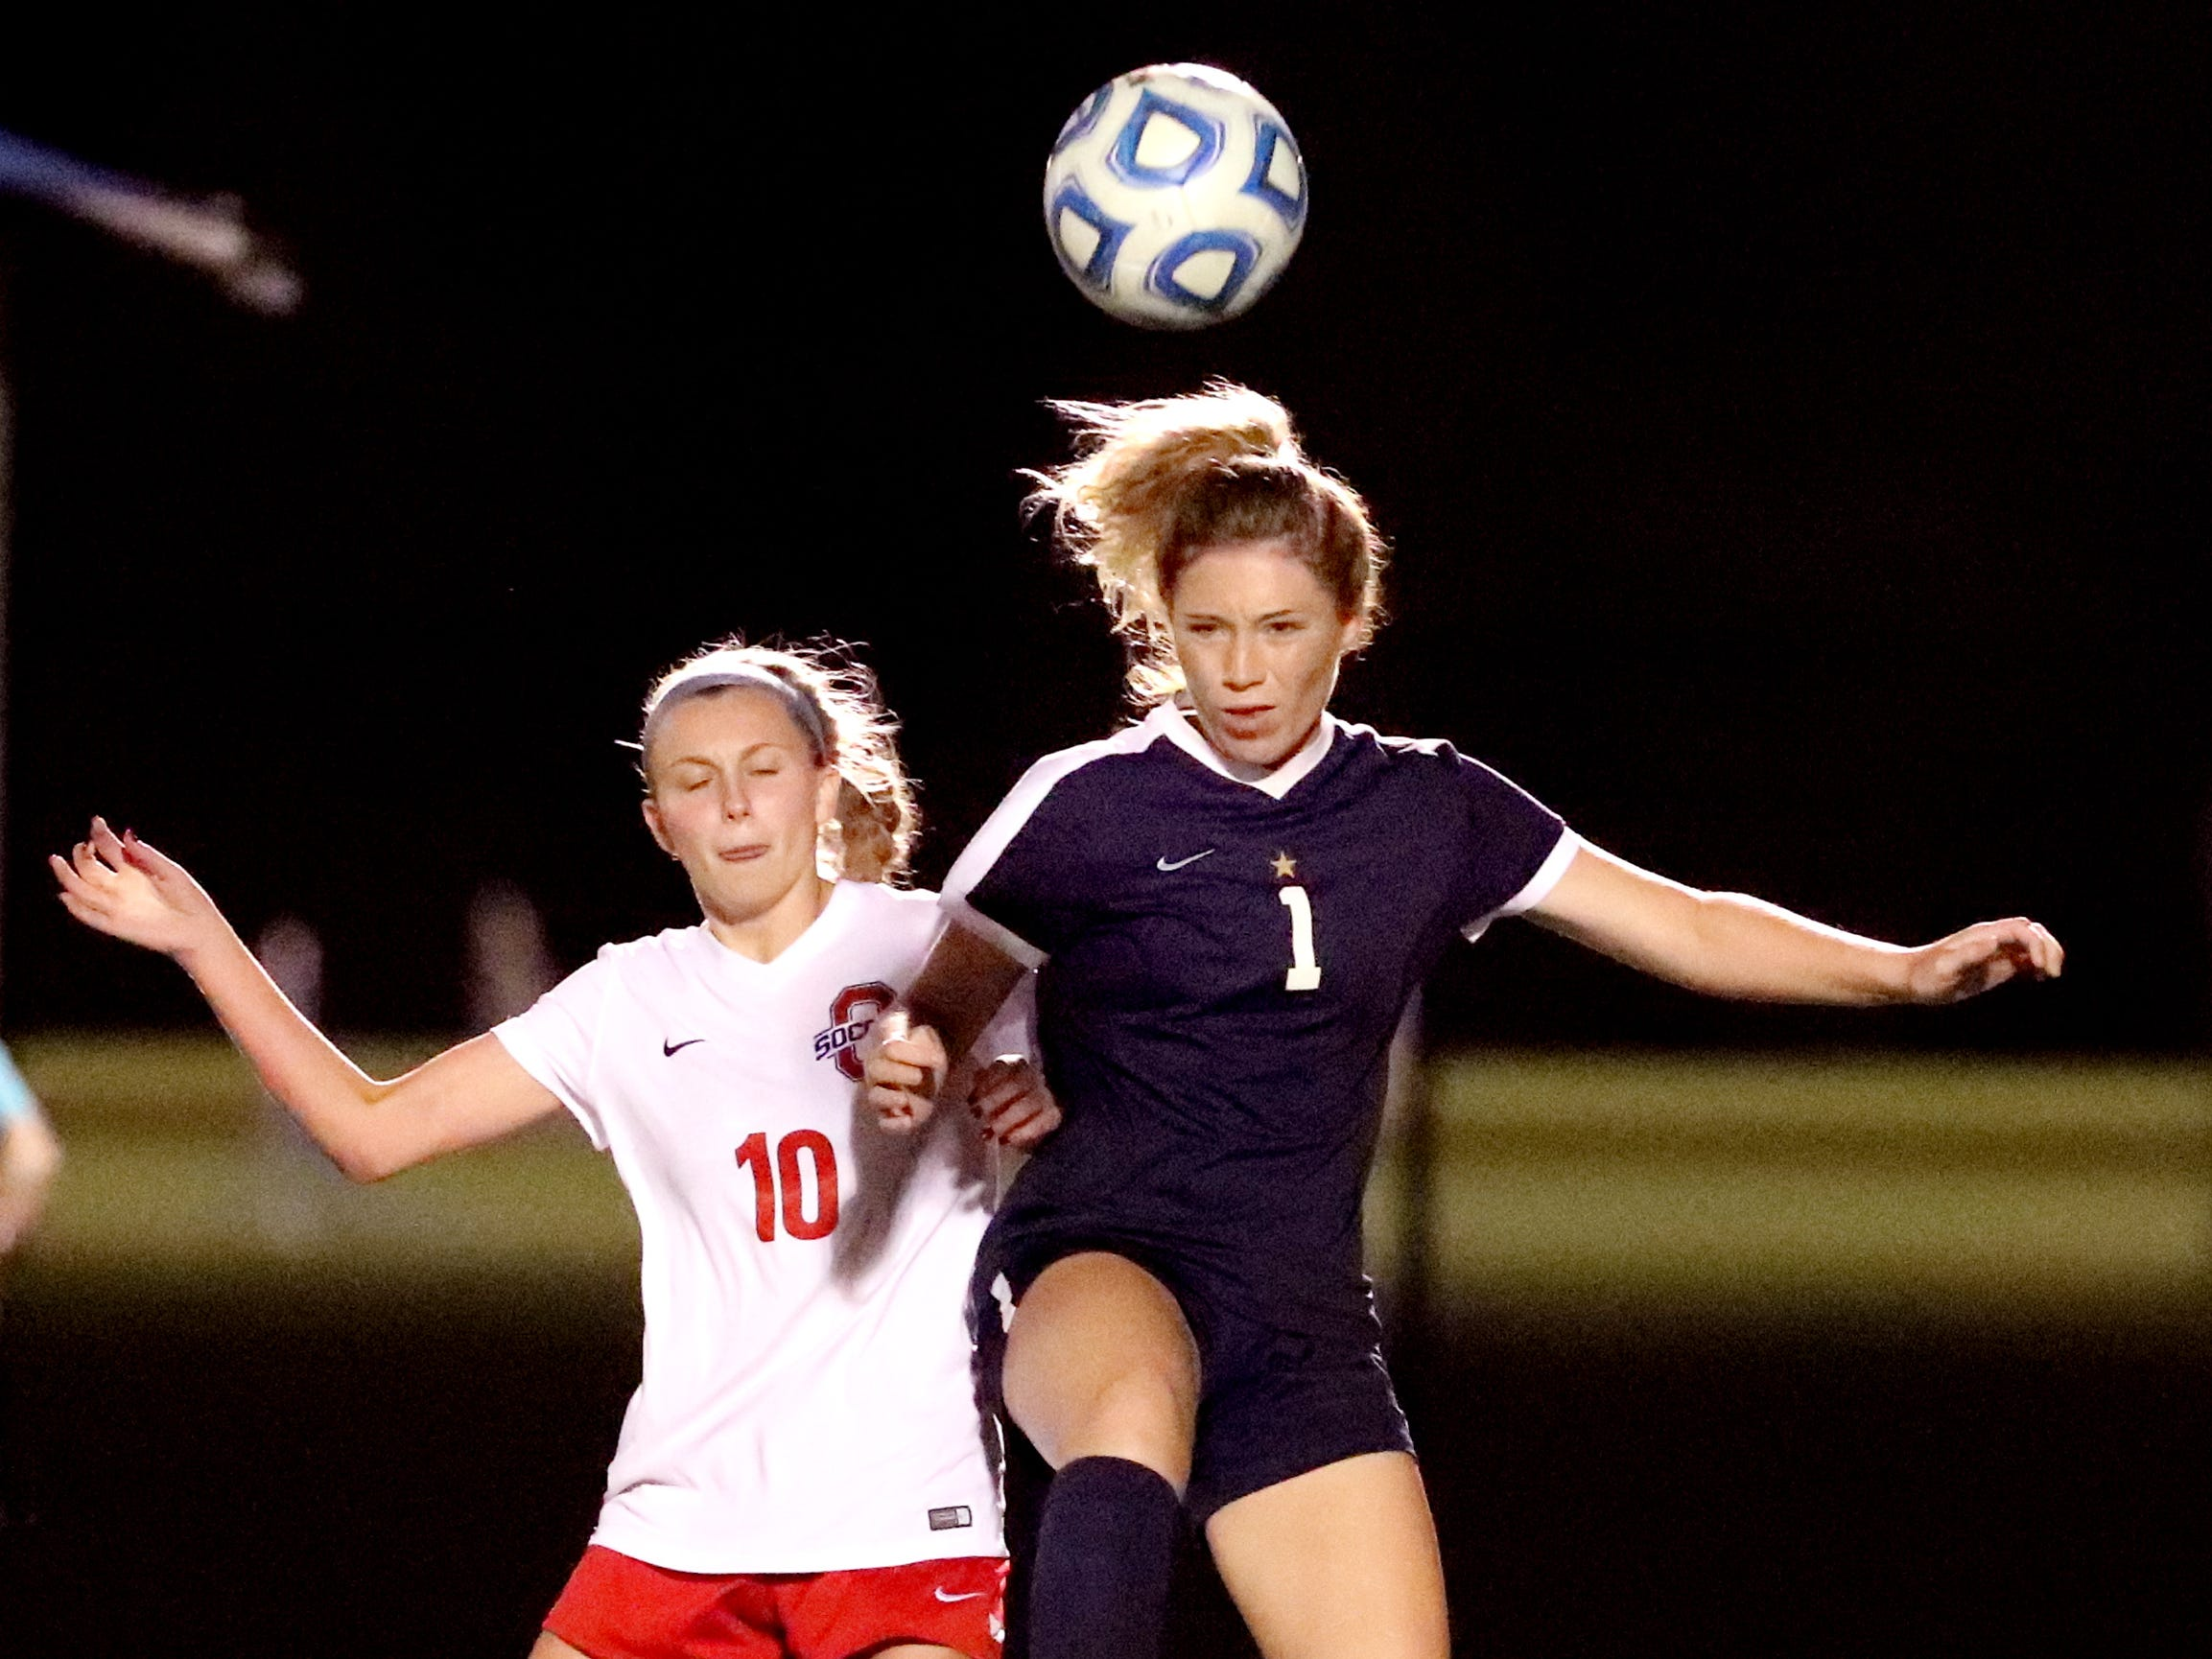 Oakland's Mackenzie Shea (10) and Siegel's Abby Palmer (1) both go after the ball during the semifinals of the 7-AAA Soccer Tournament, on Tuesday,  Oct. 09, 2018 at the Siegel Soccer Complex.